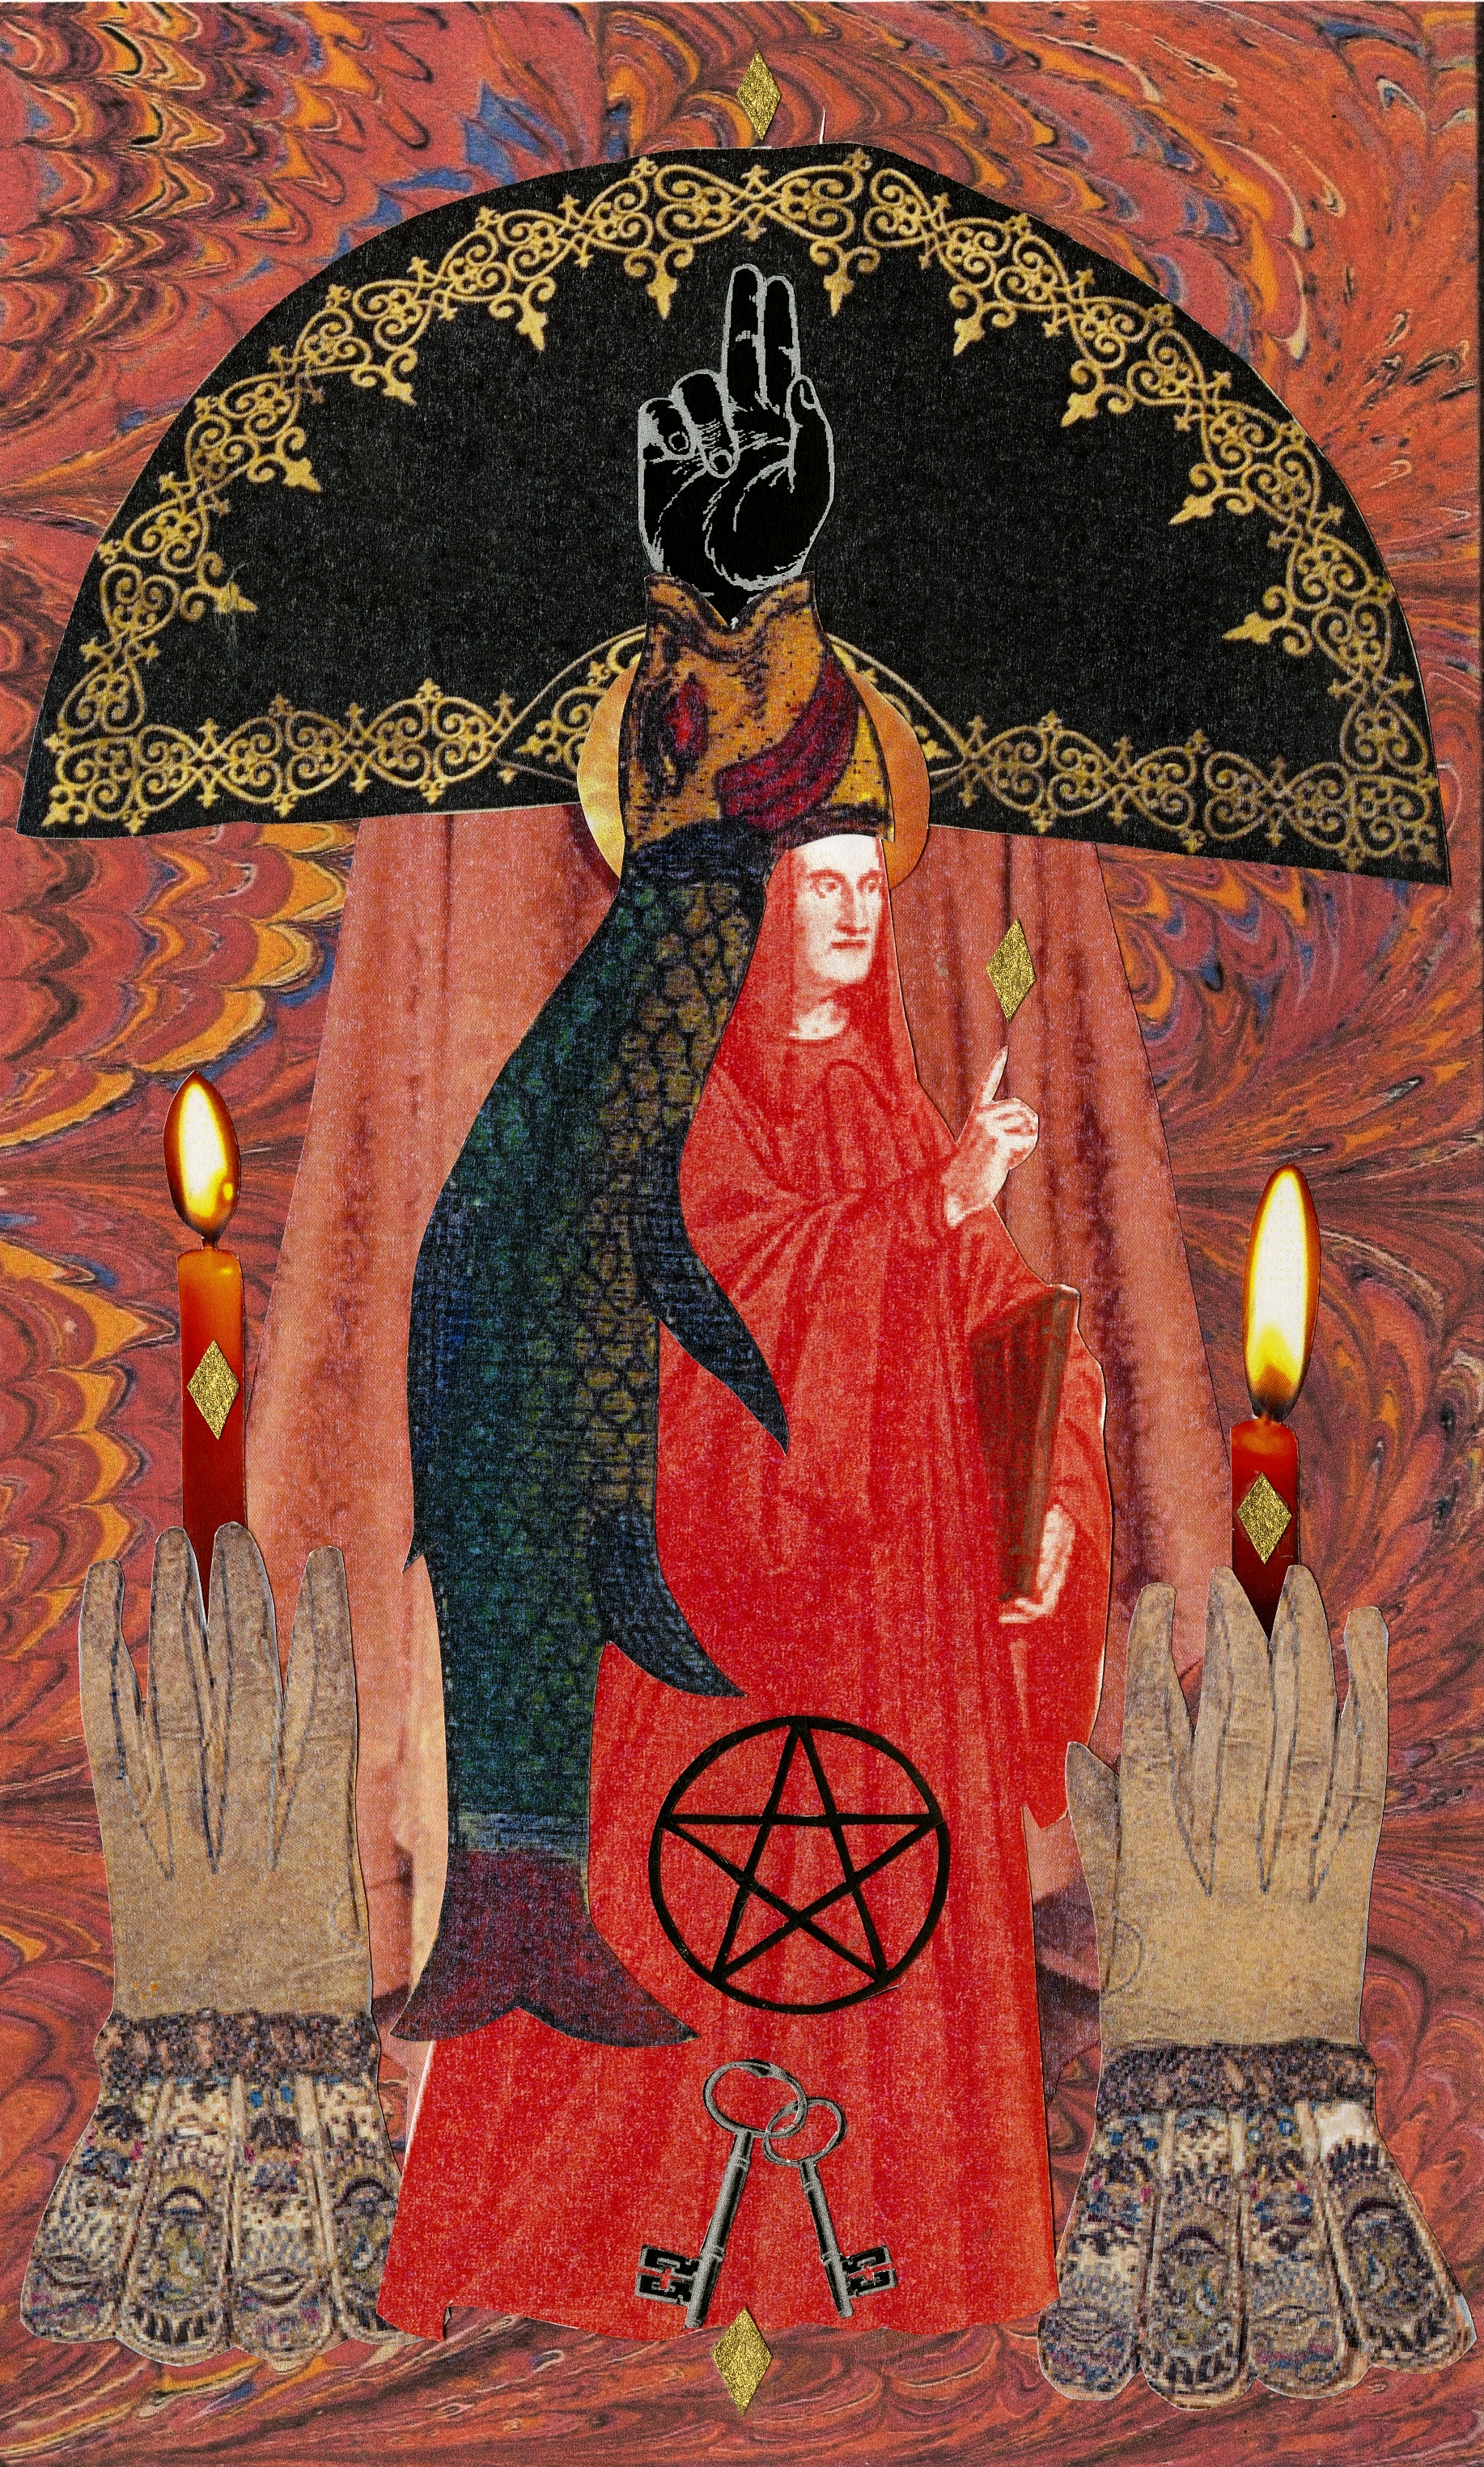 Hierophant scan cropped fix gold shpes.jpg